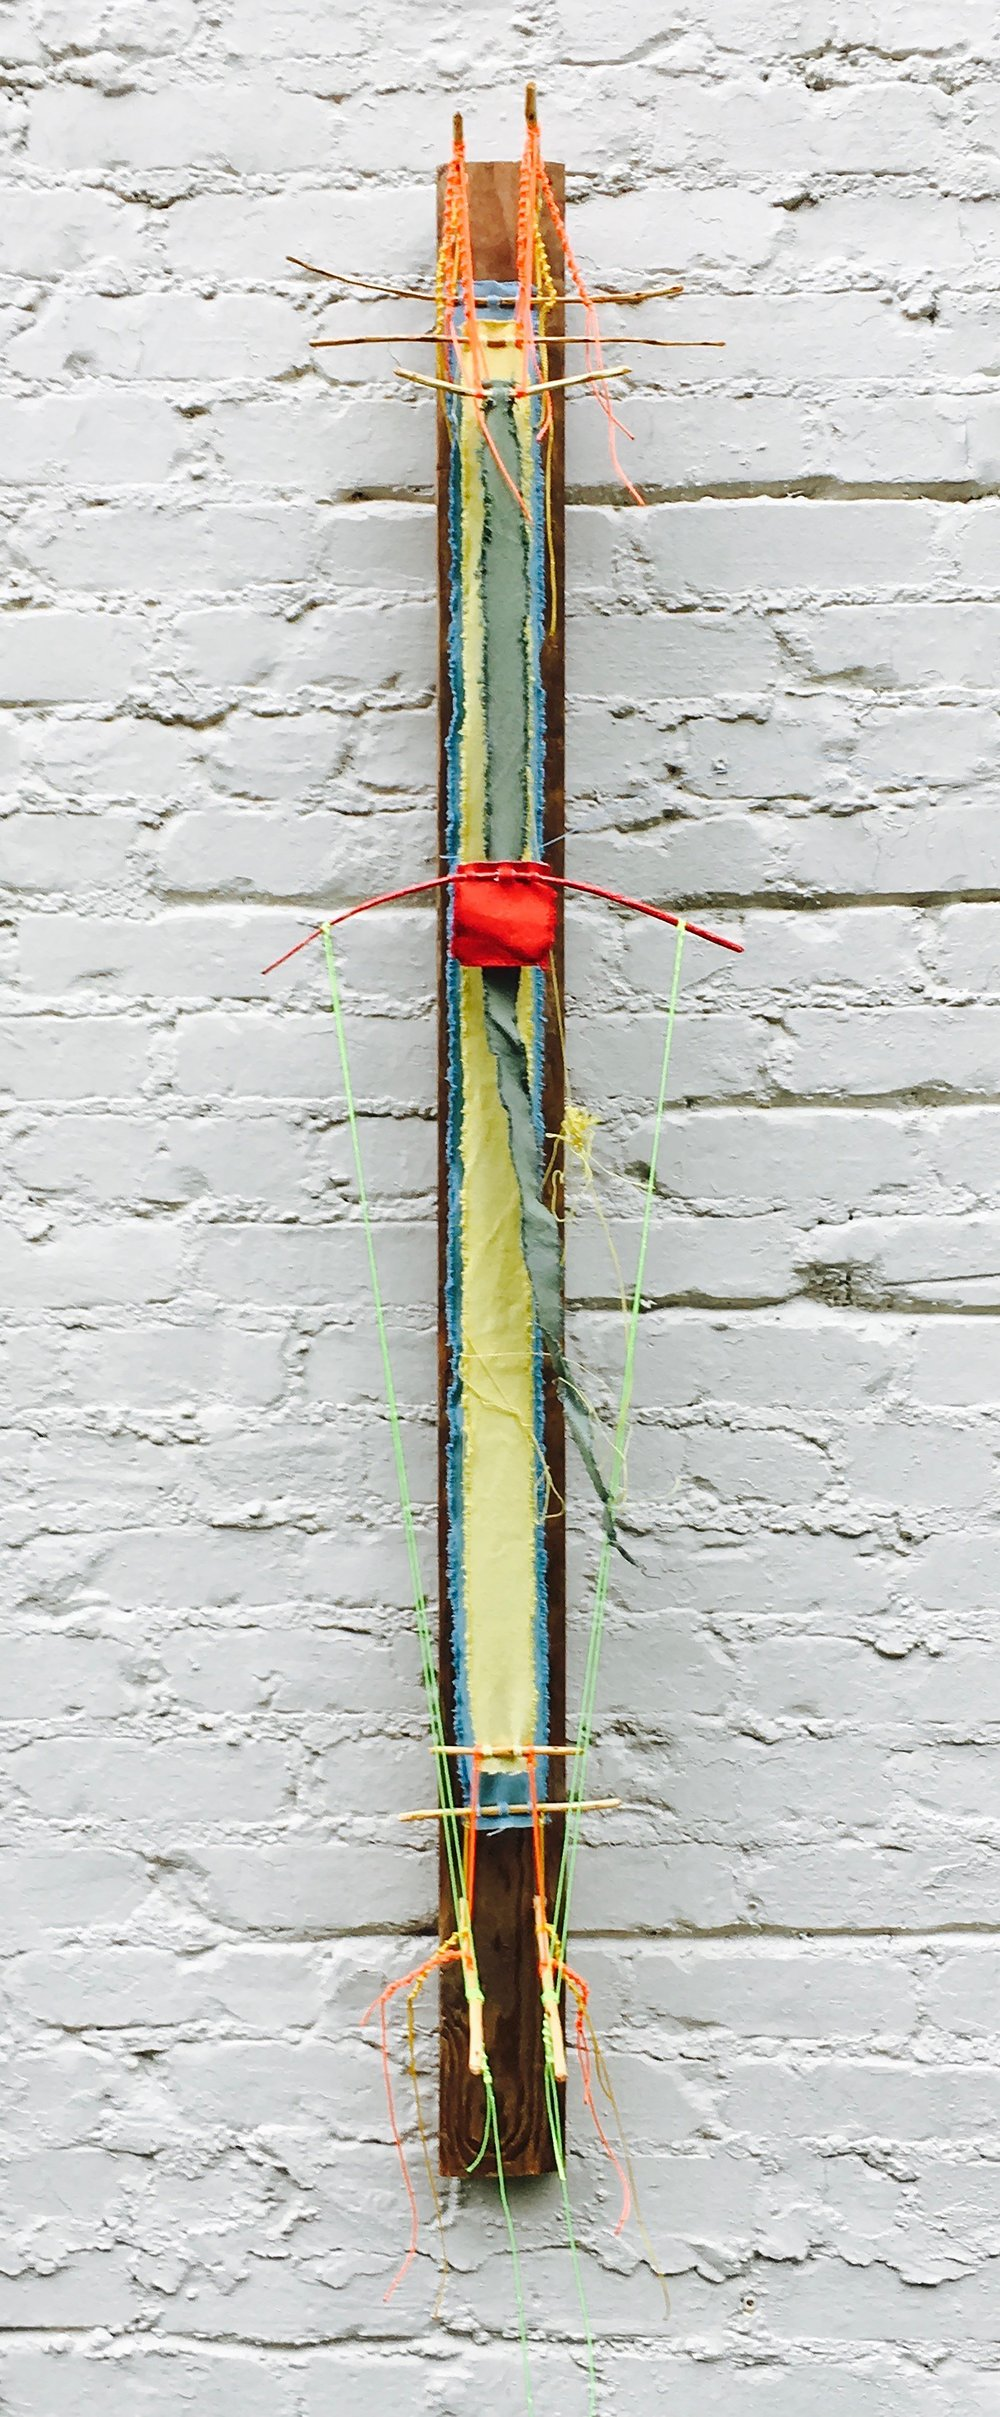 "#Day24595 - stele, archival artefact   2017 · found board/sticks, canvas, string, dye, crayon, varnish · 65""x12""x4"""